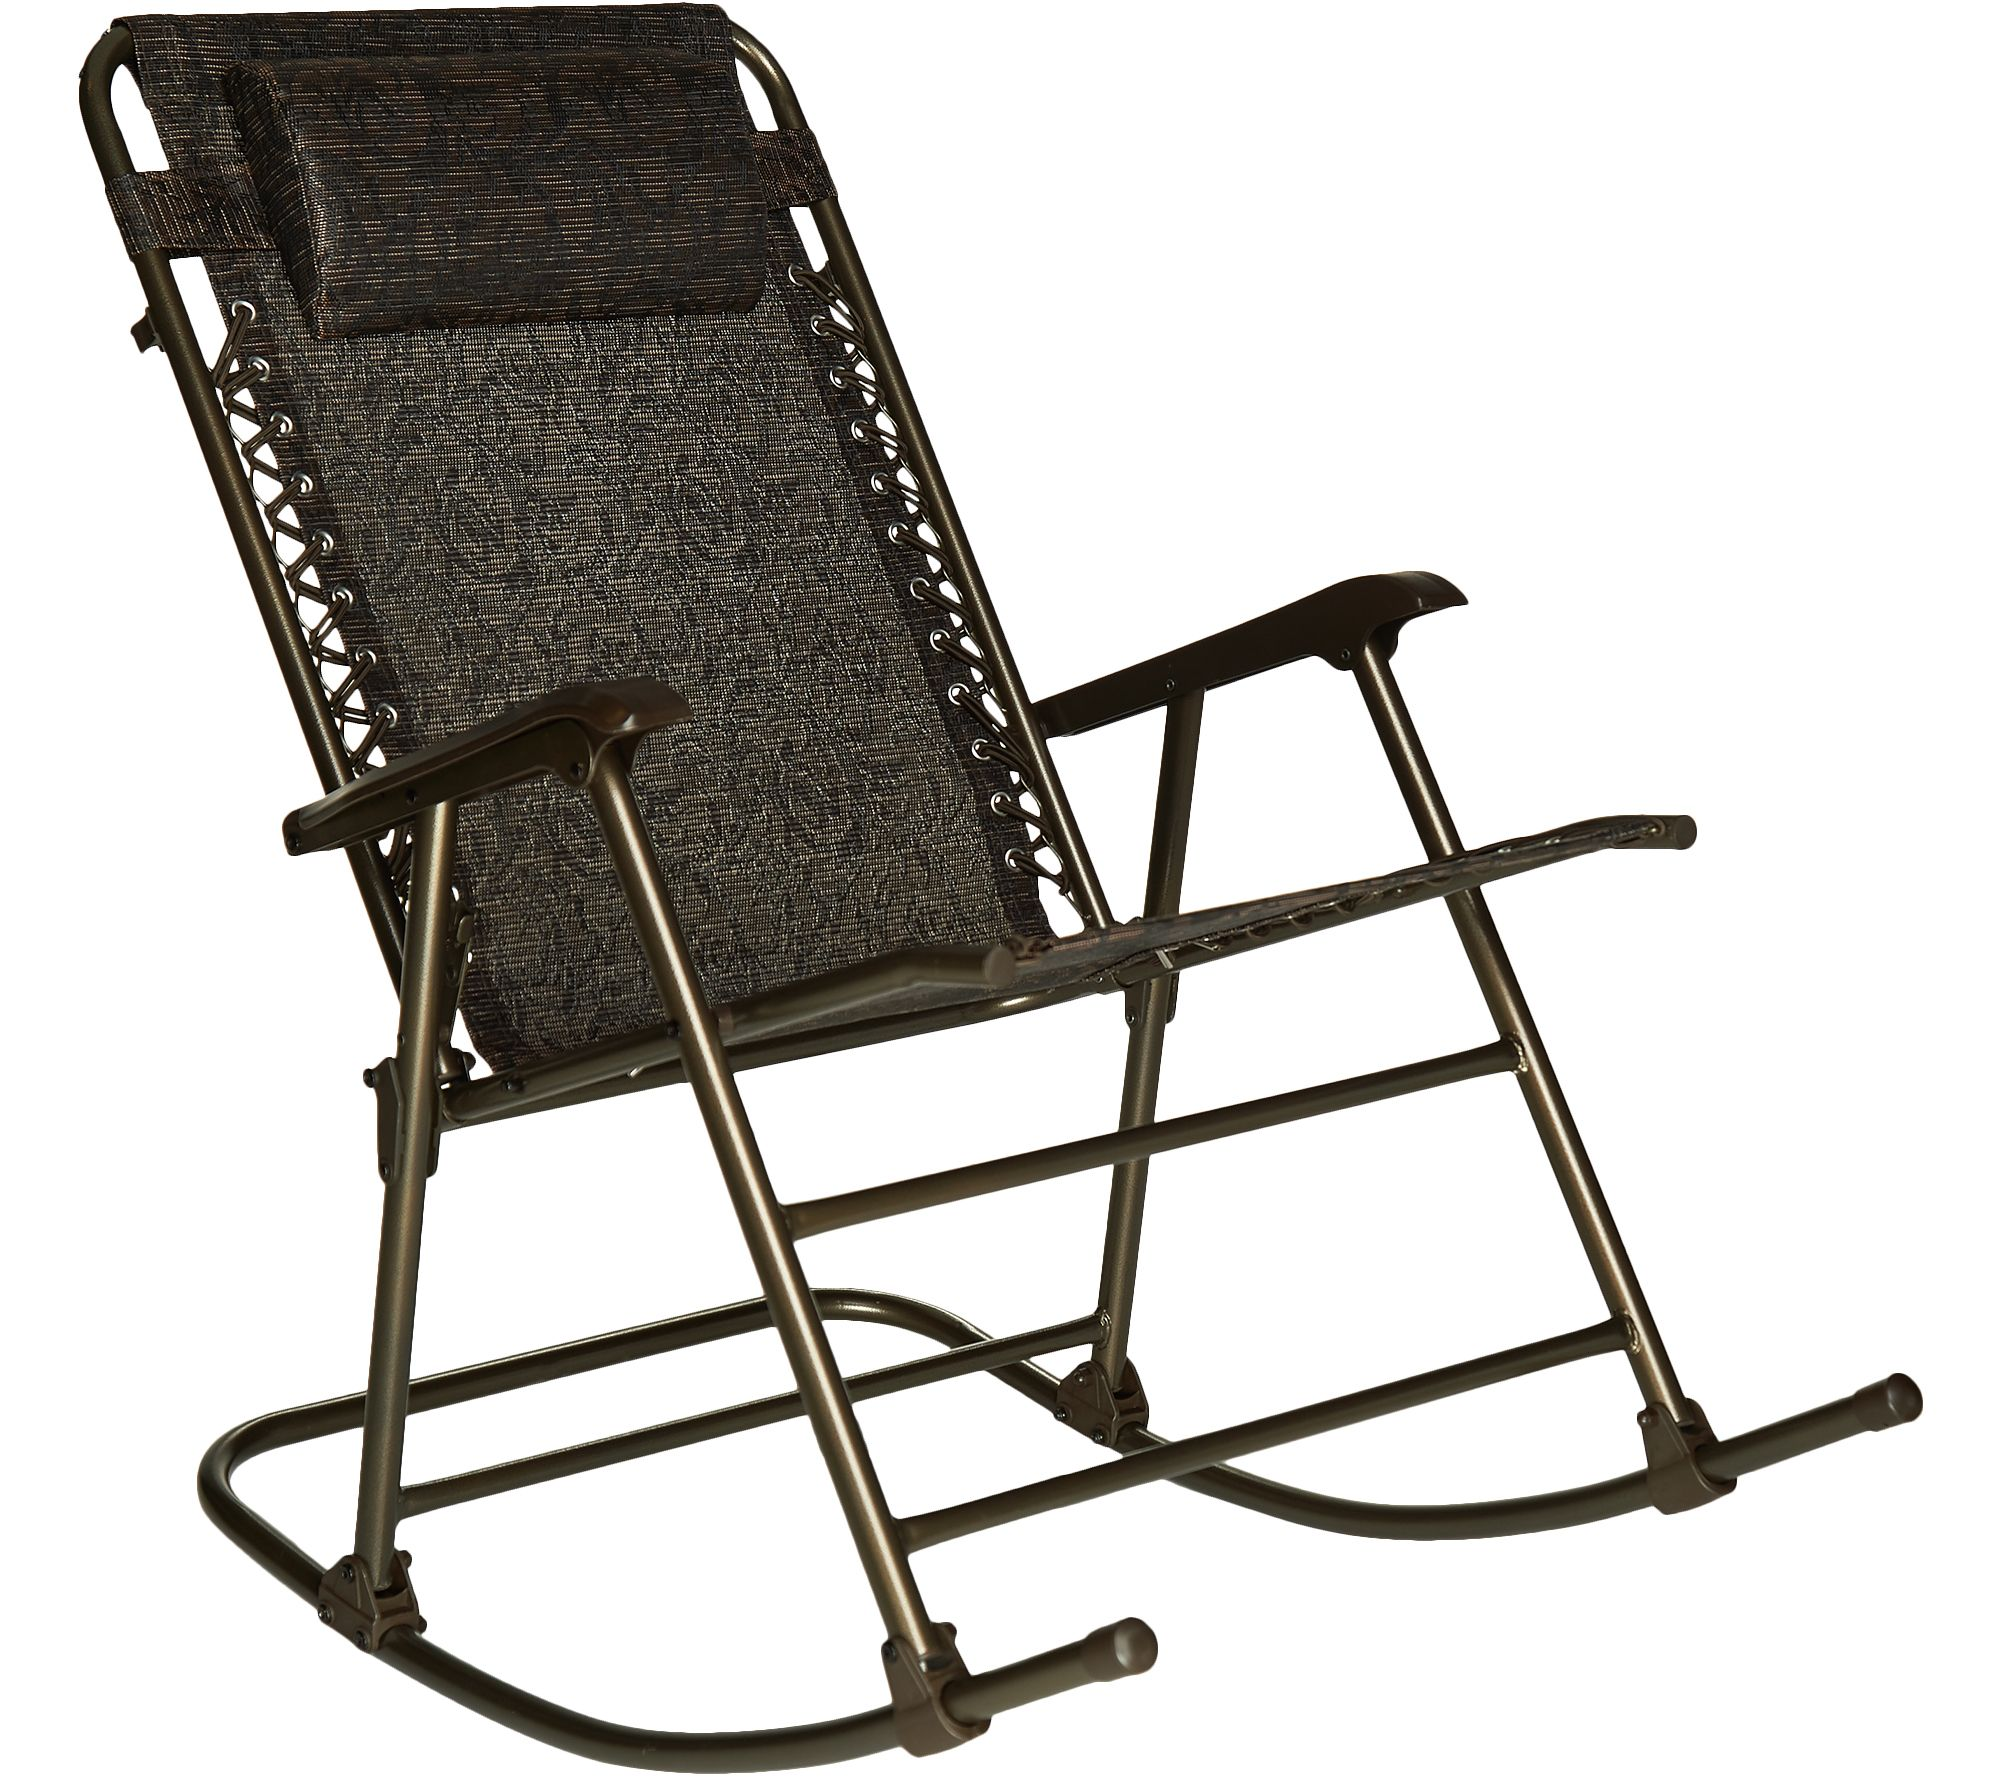 foldable rocking chair covers for incontinence bliss hammocks deluxe with headrest page 1 qvc com